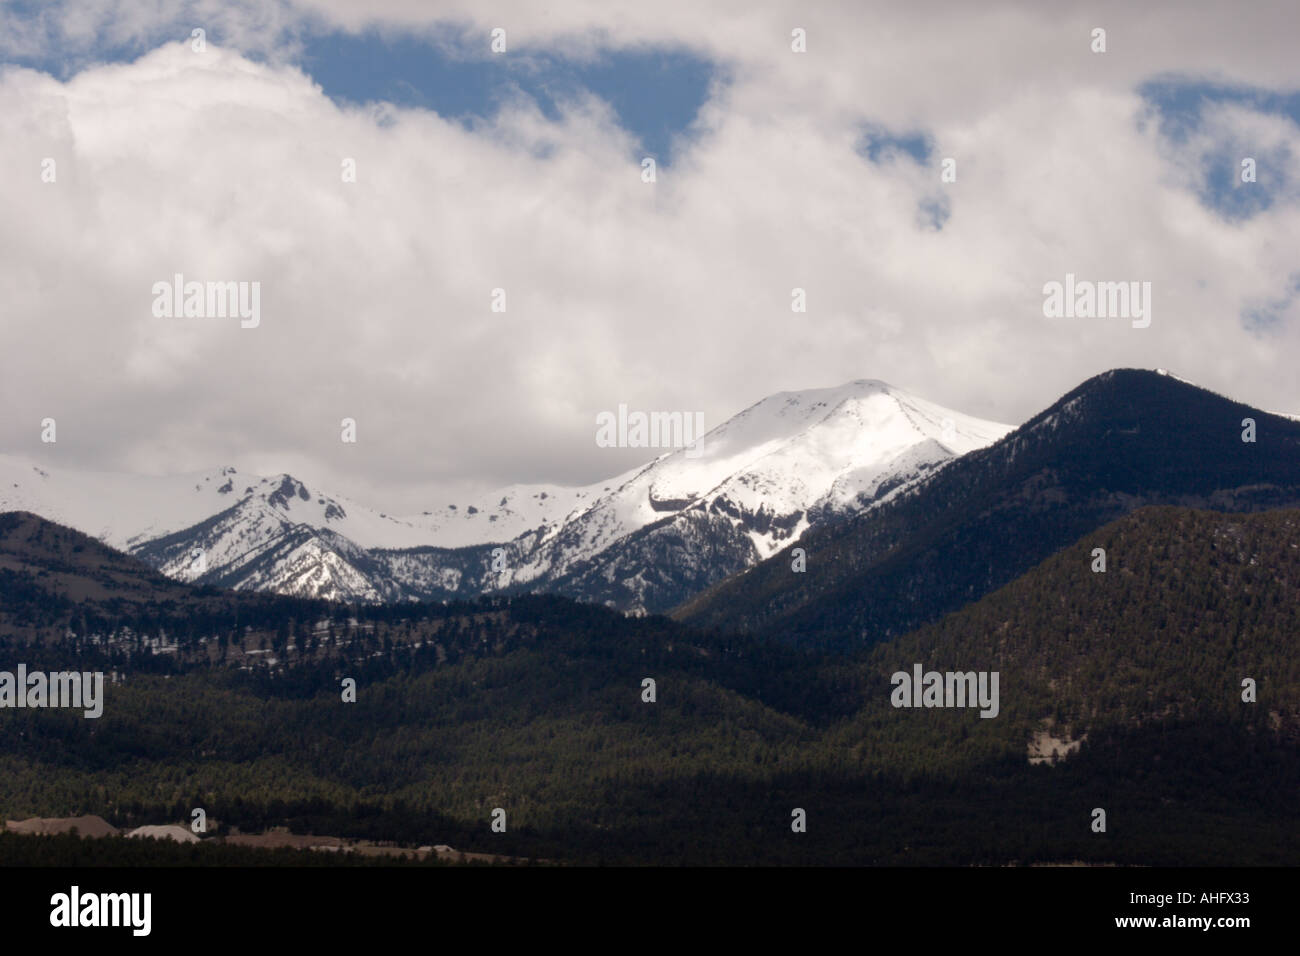 San Francisco Mountain, Flagstaff, Arizona, including Humphrey's Peak - at 12,633 ft this is Arizona's highest point - Stock Image